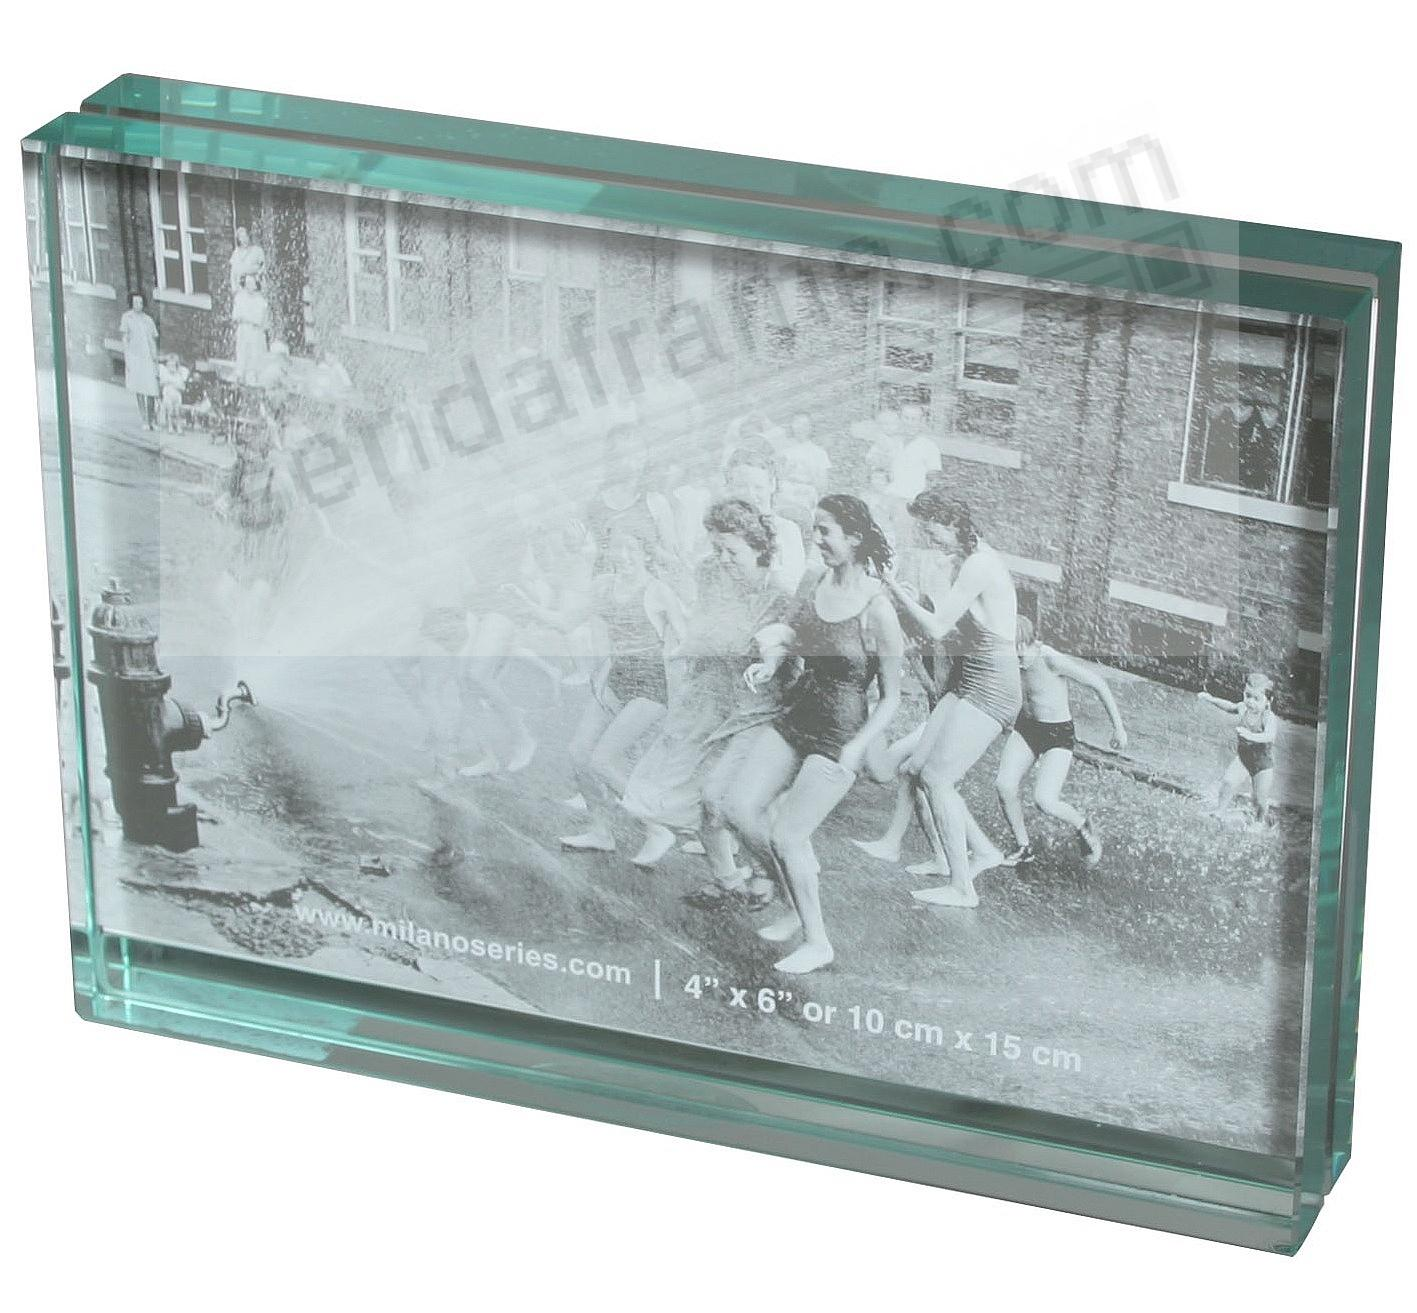 CLARITY glass block 4x6 landscape frame by Milano Series - Picture ...